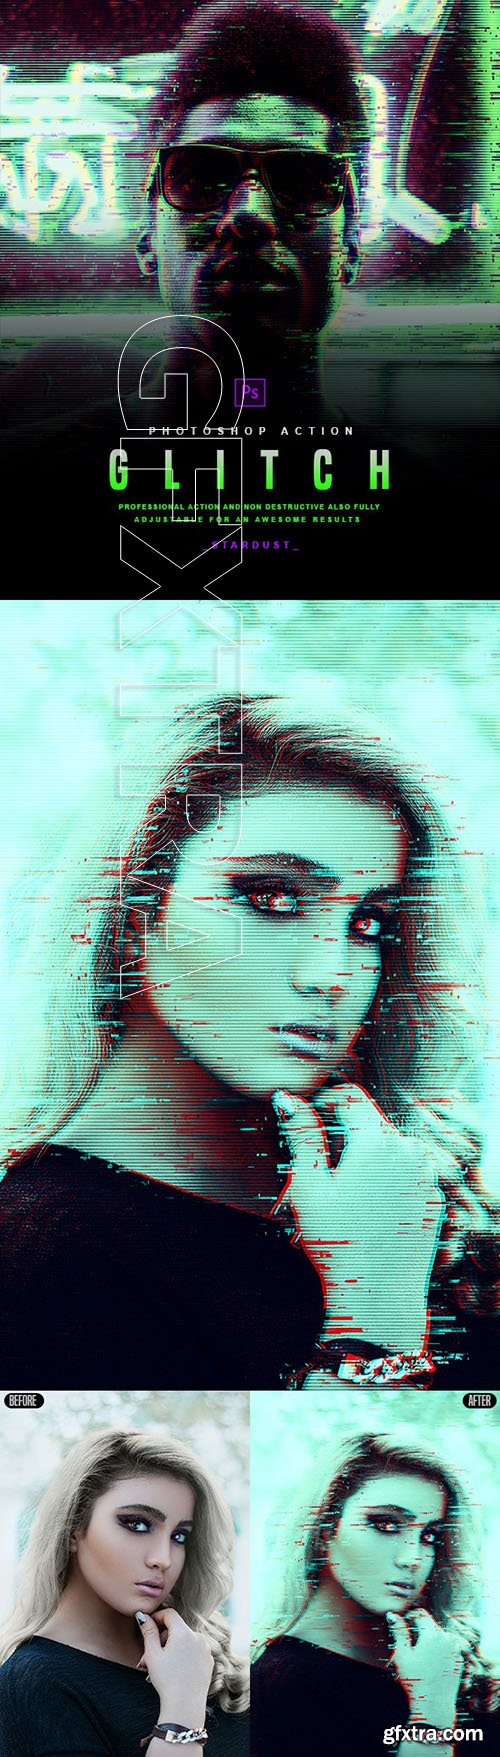 GraphicRiver - Glitch - Photoshop Action 29906864